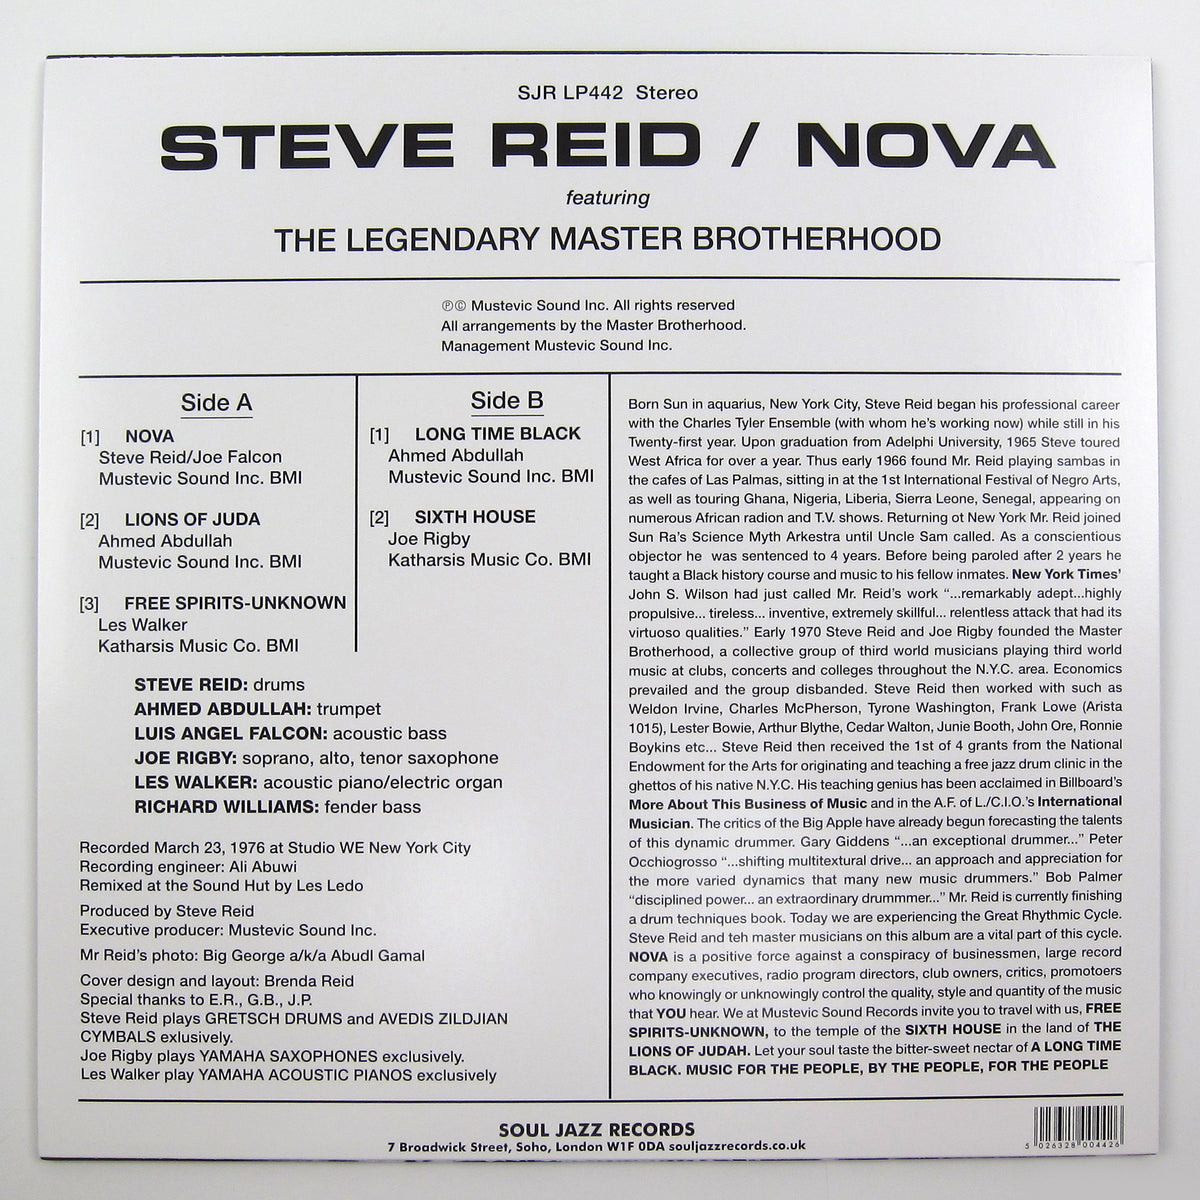 Steve Reid: Nova (Colored Vinyl) Vinyl LP